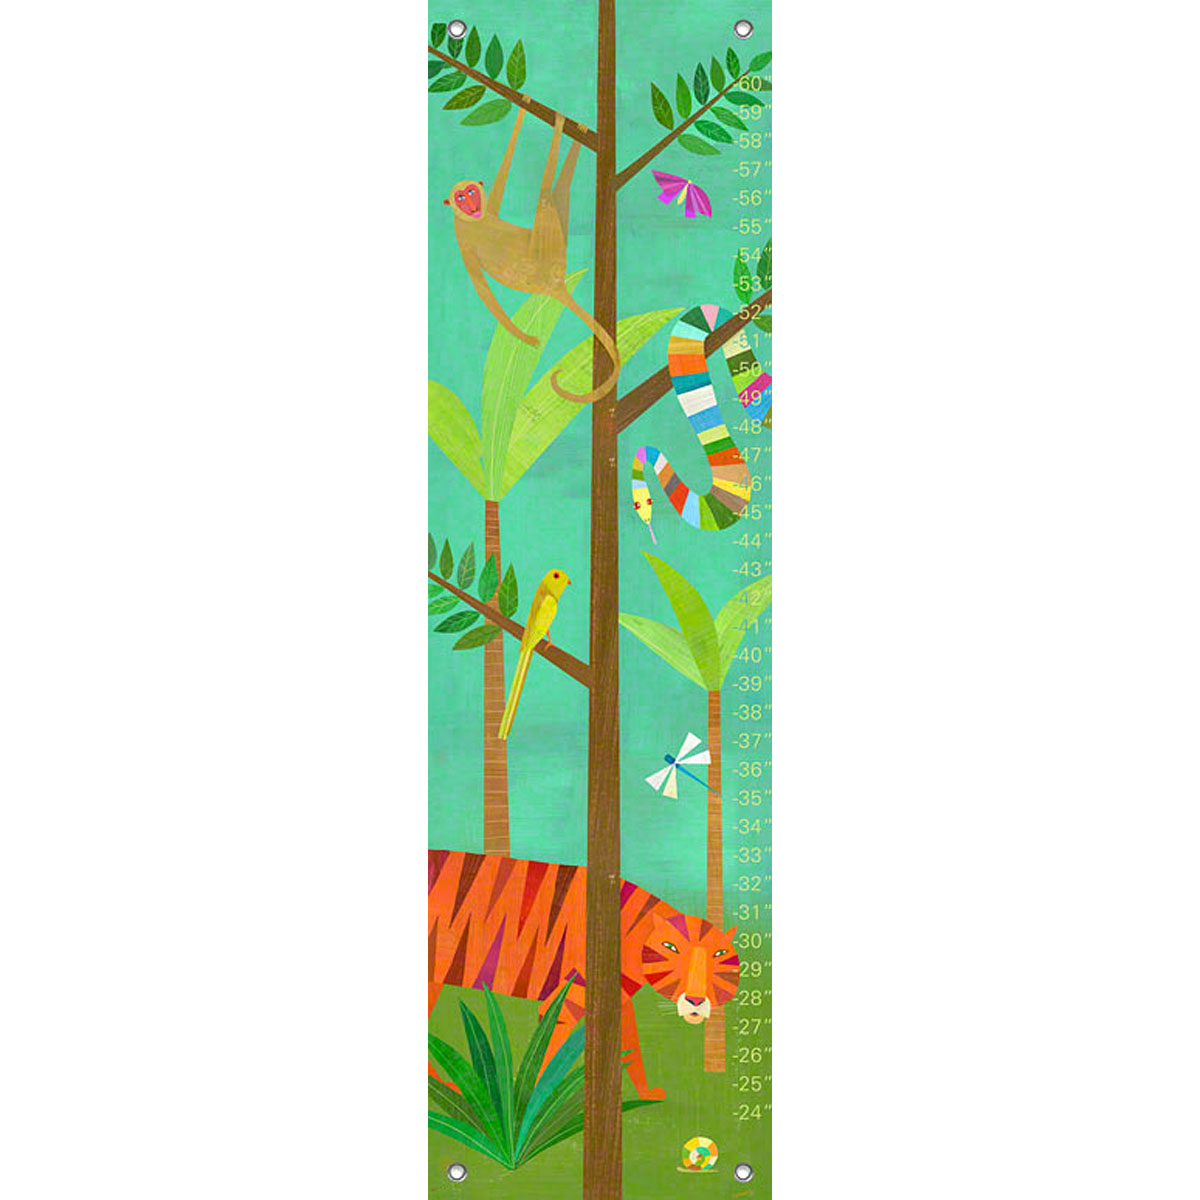 12 by 42-Inch PE2832 Oopsy Daisy Can Do Kids by Maria Carluccio Growth Charts